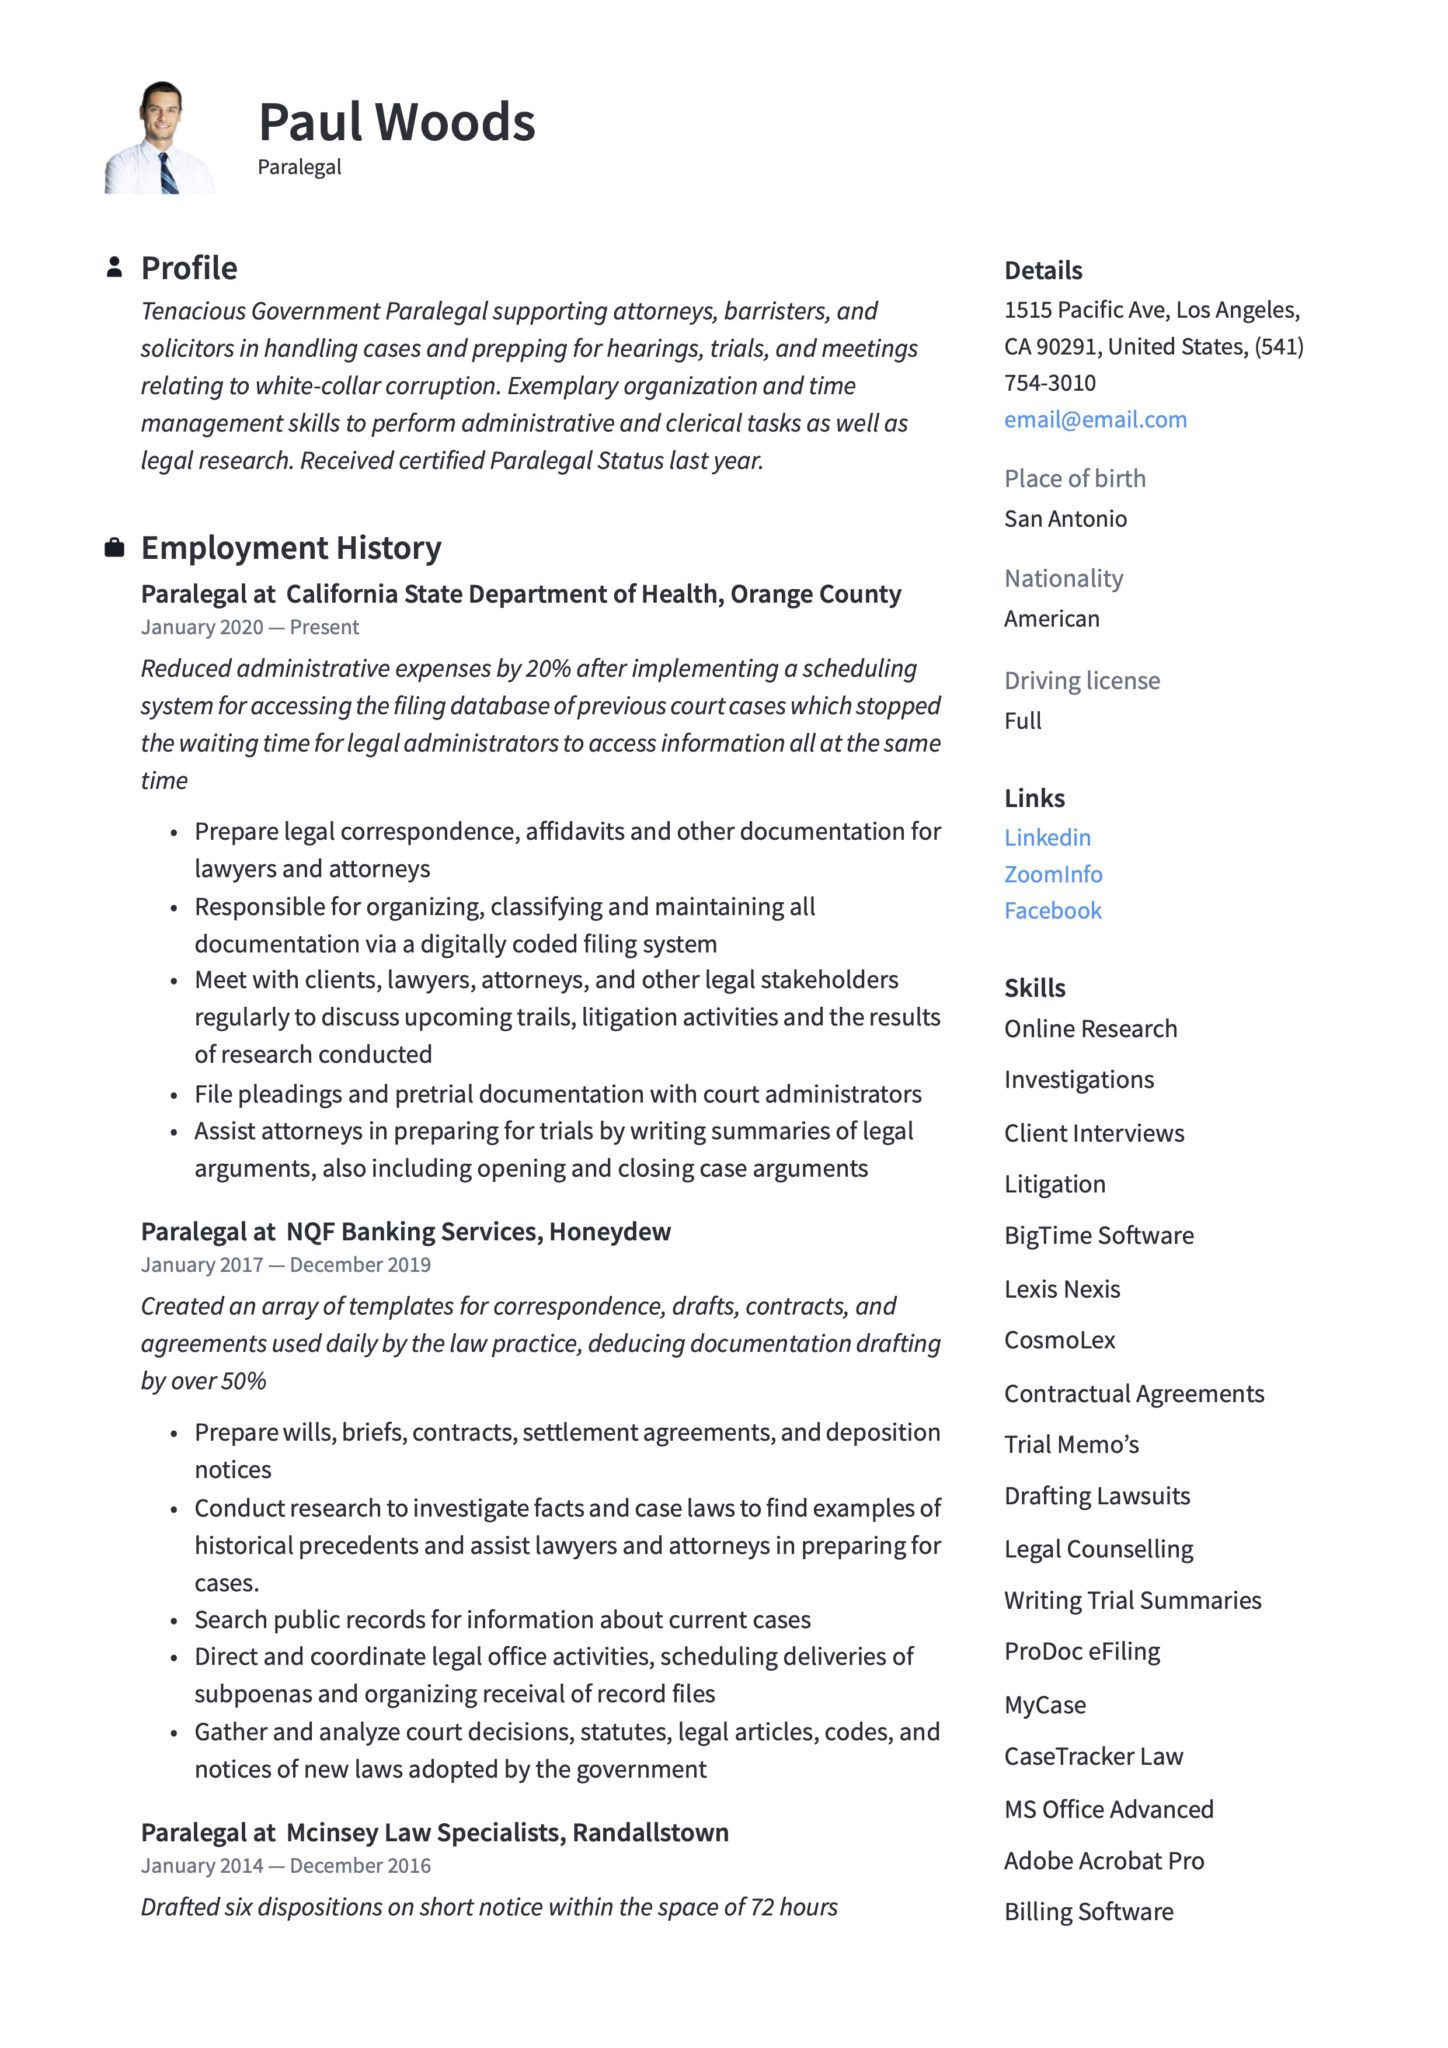 paralegal resume examples guide pdf free skills scaled caretaker now fees relevant Resume Paralegal Skills Resume